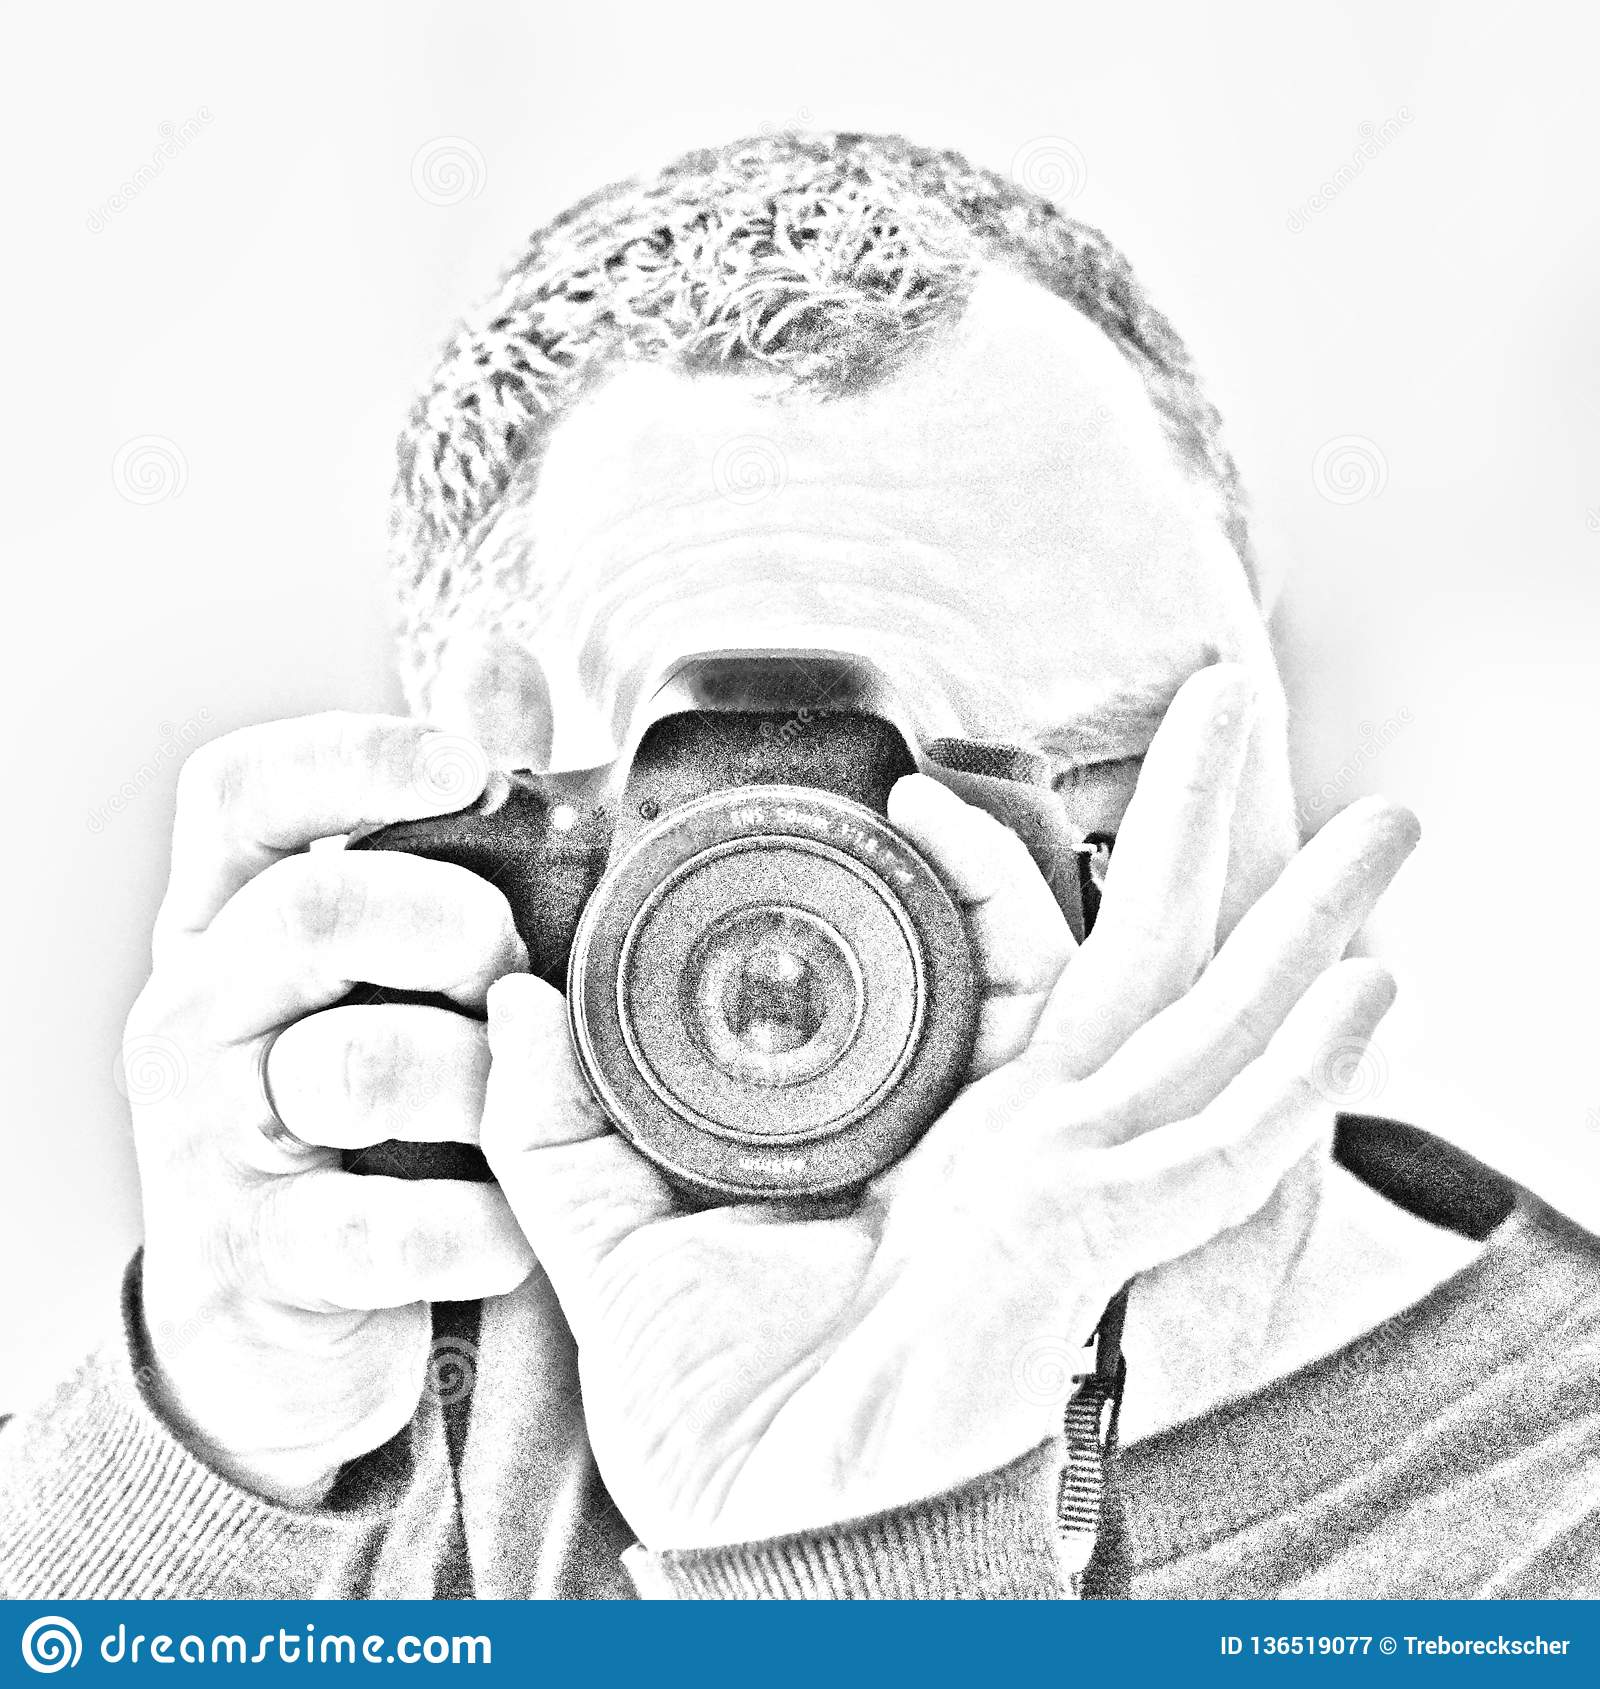 Photographer in self portrait looks through a camera and photographs himself in a mirrow the image is in pencil drawing look